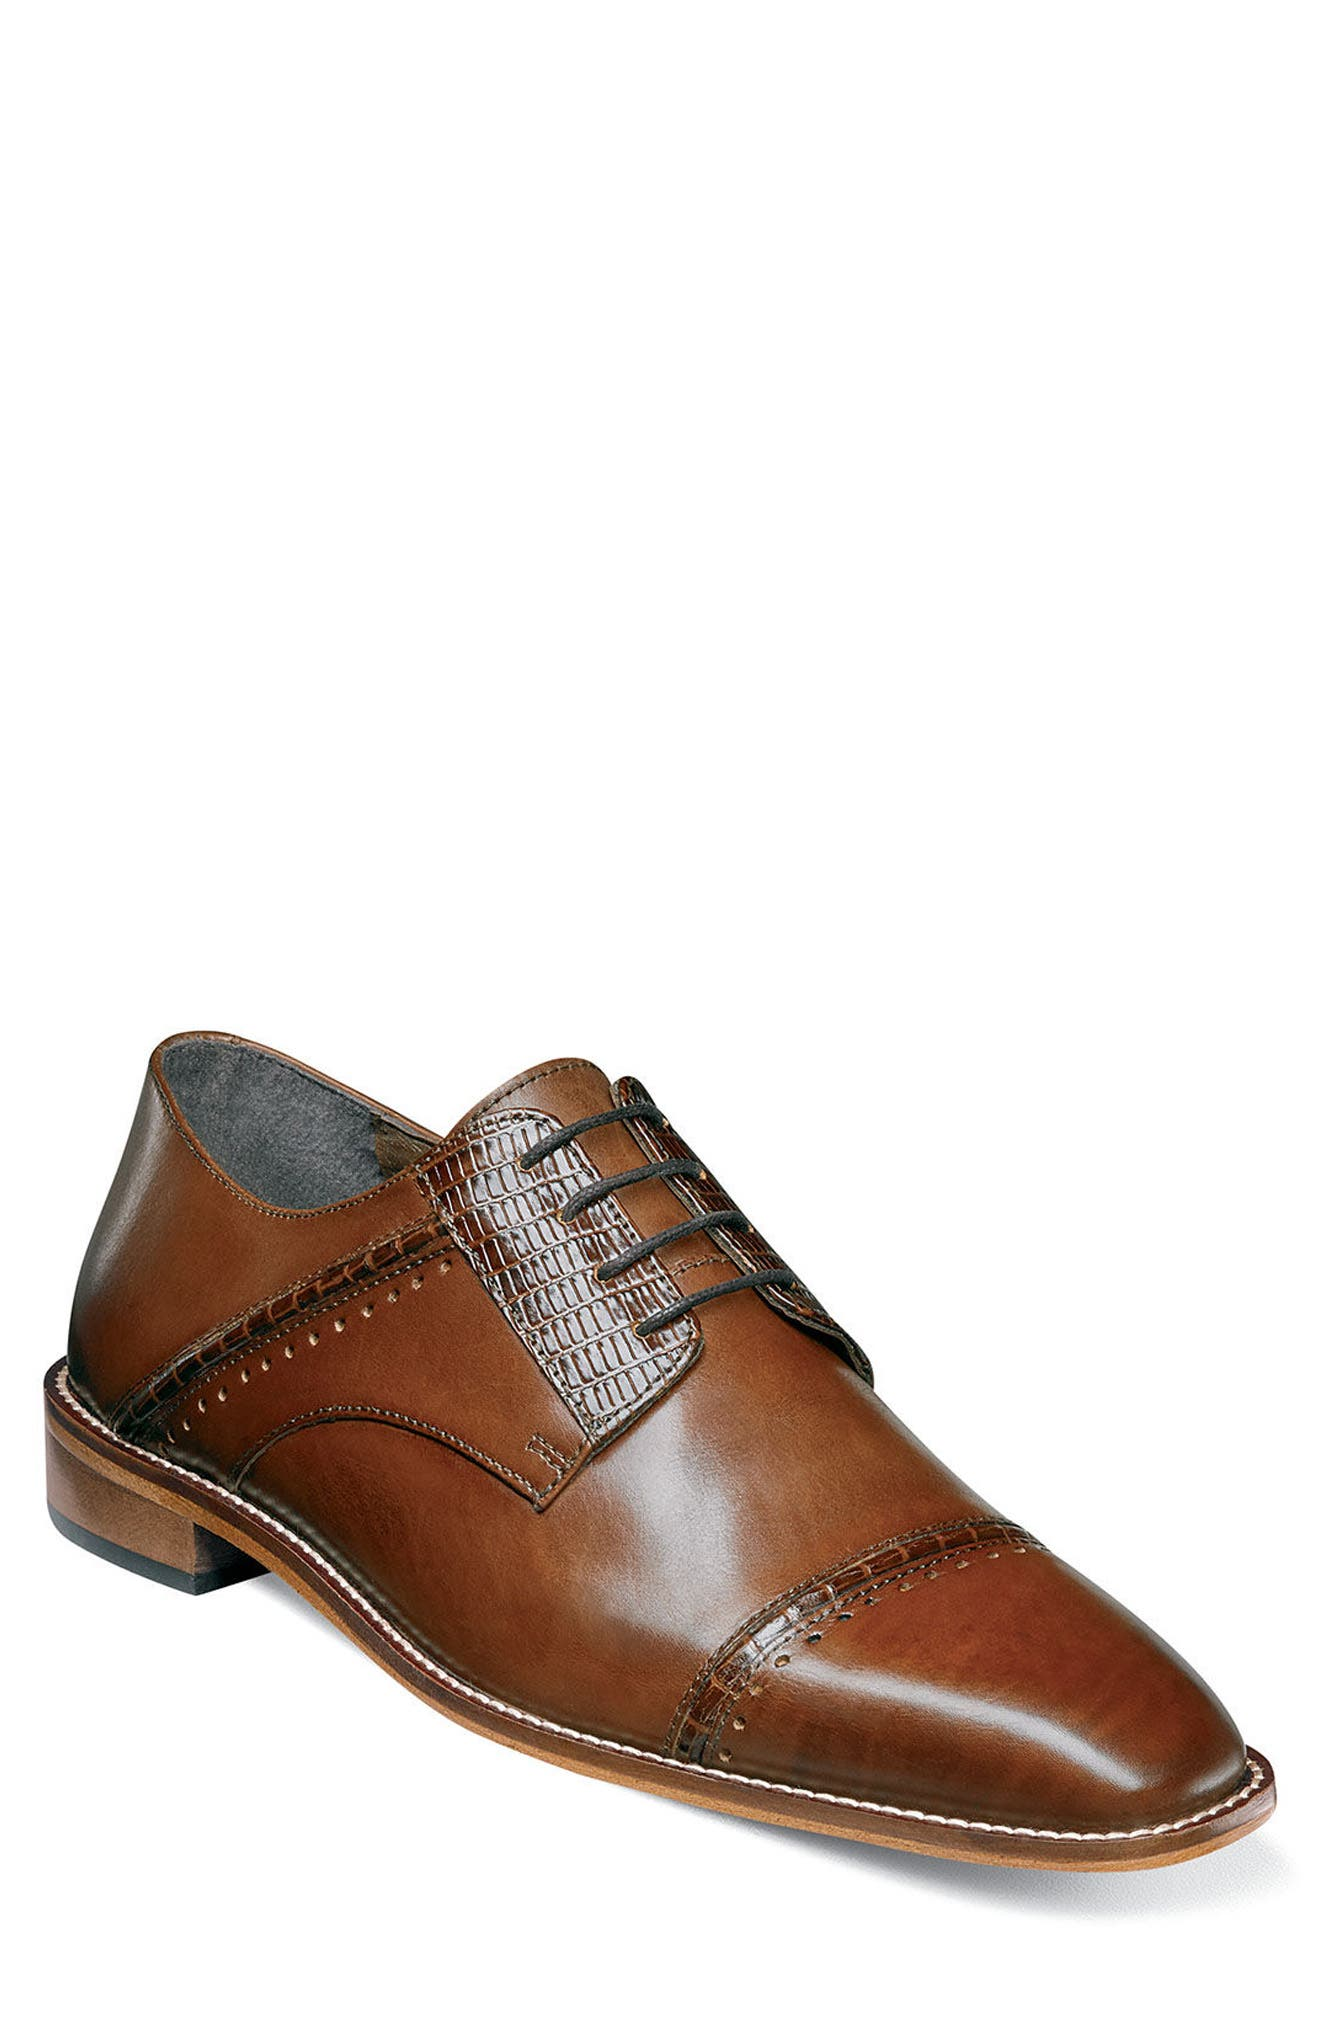 Main Image - Stacy Adams Ryland Cap Toe Derby (Men)